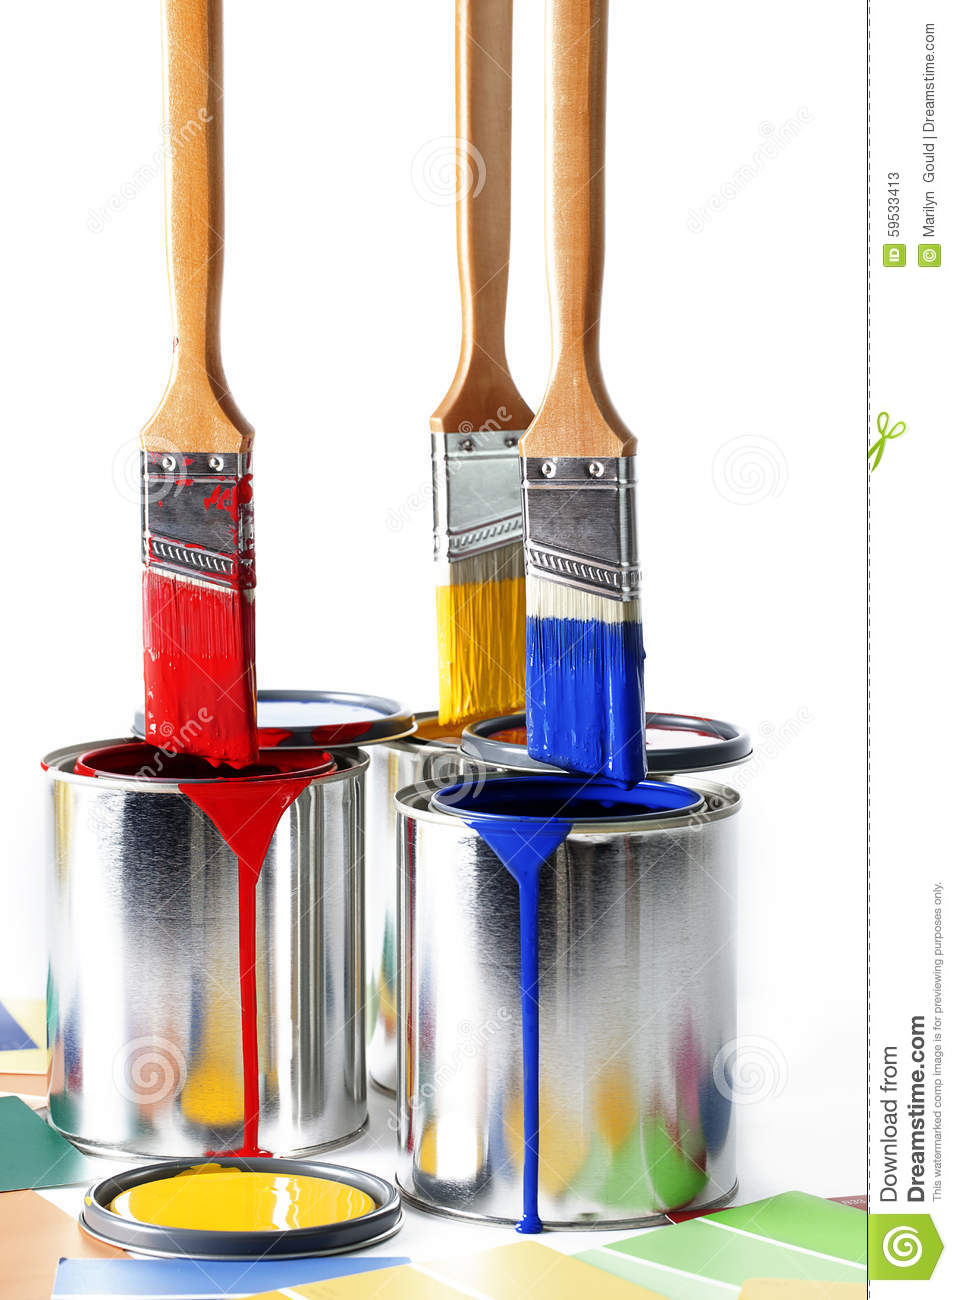 Darkbluepaintbrush: Primary Colors On Paint Brushes 2 Stock Photo